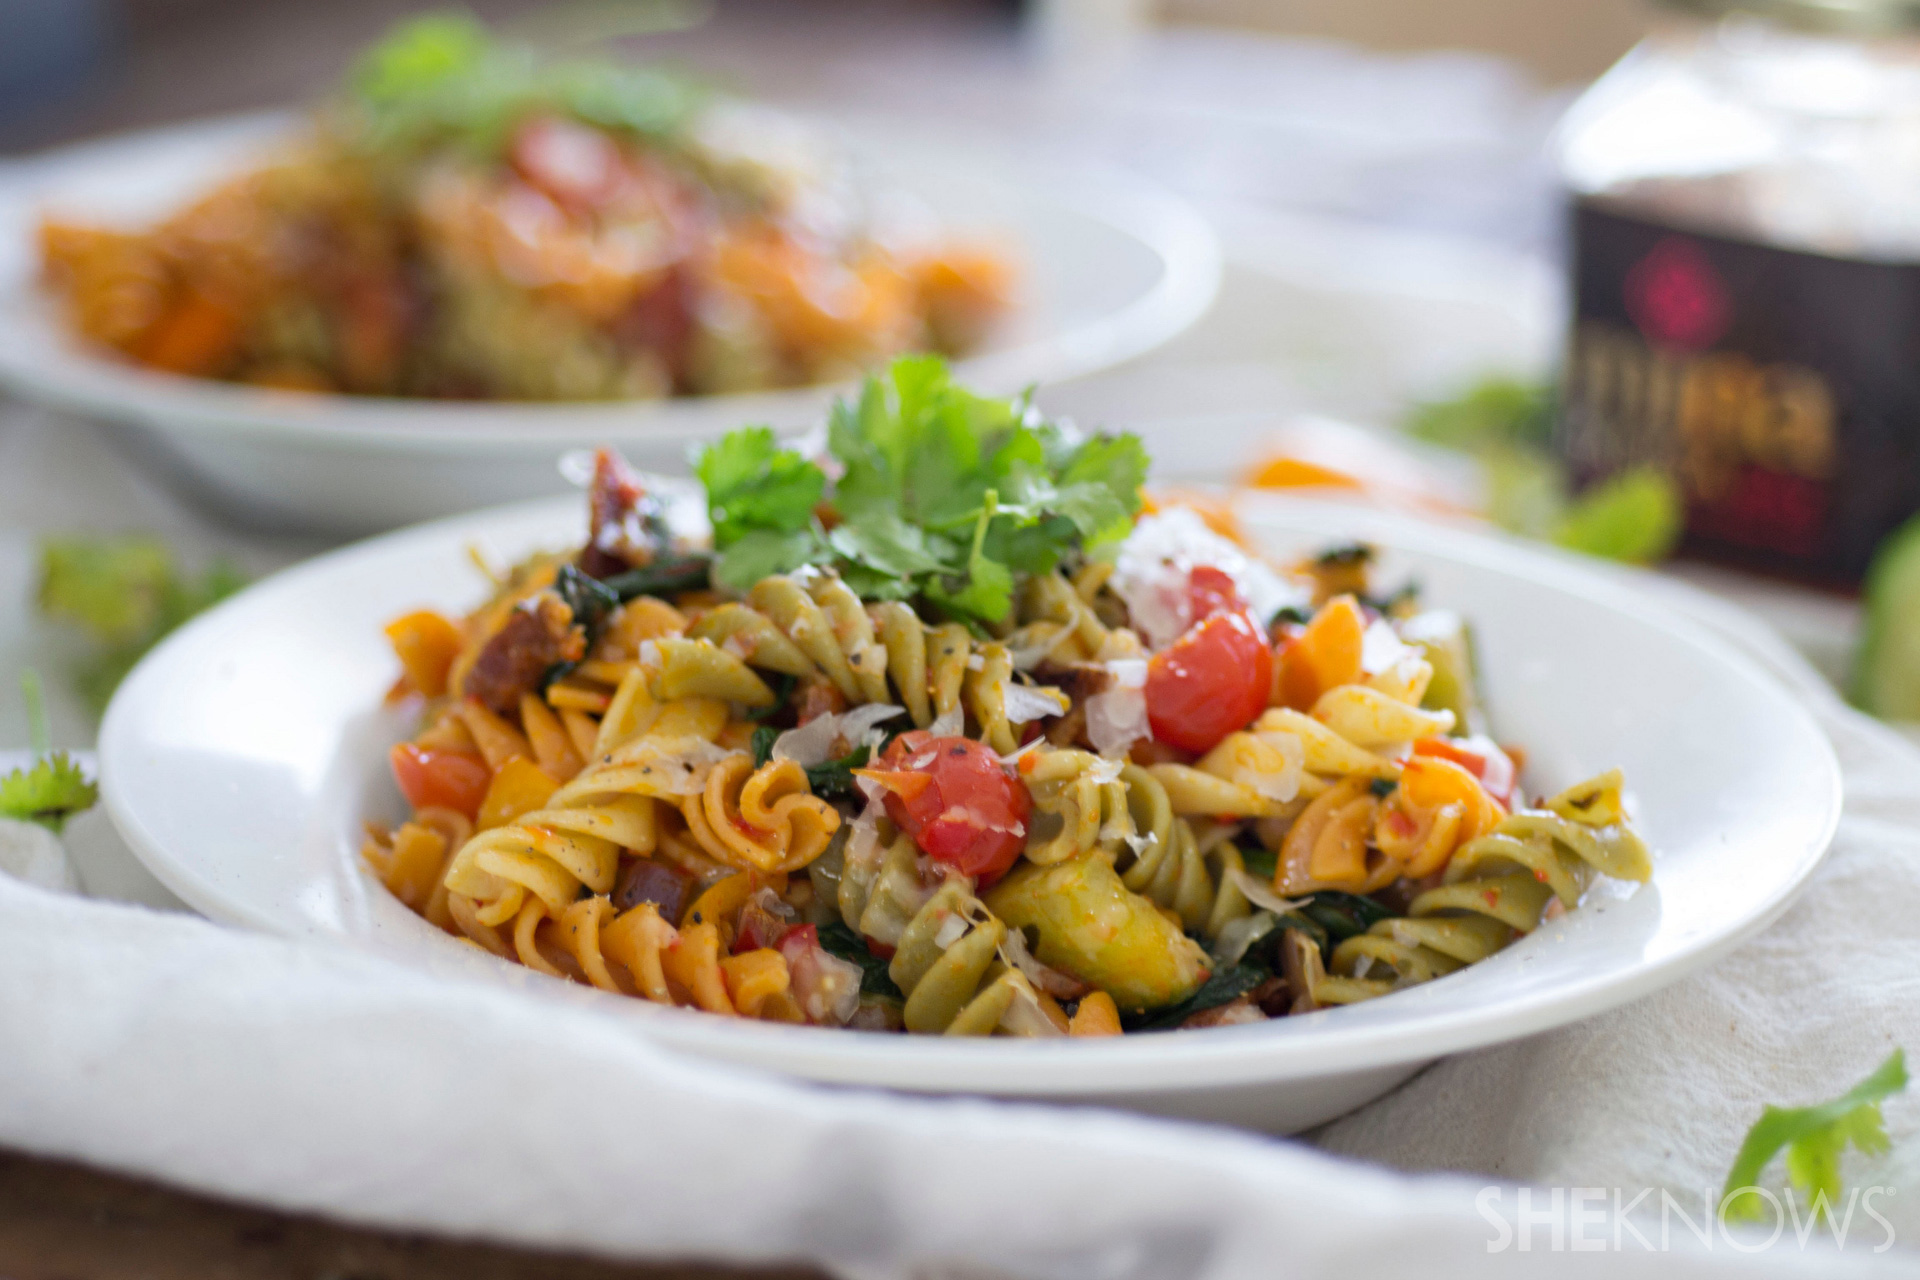 Spicy harissa pasta salad